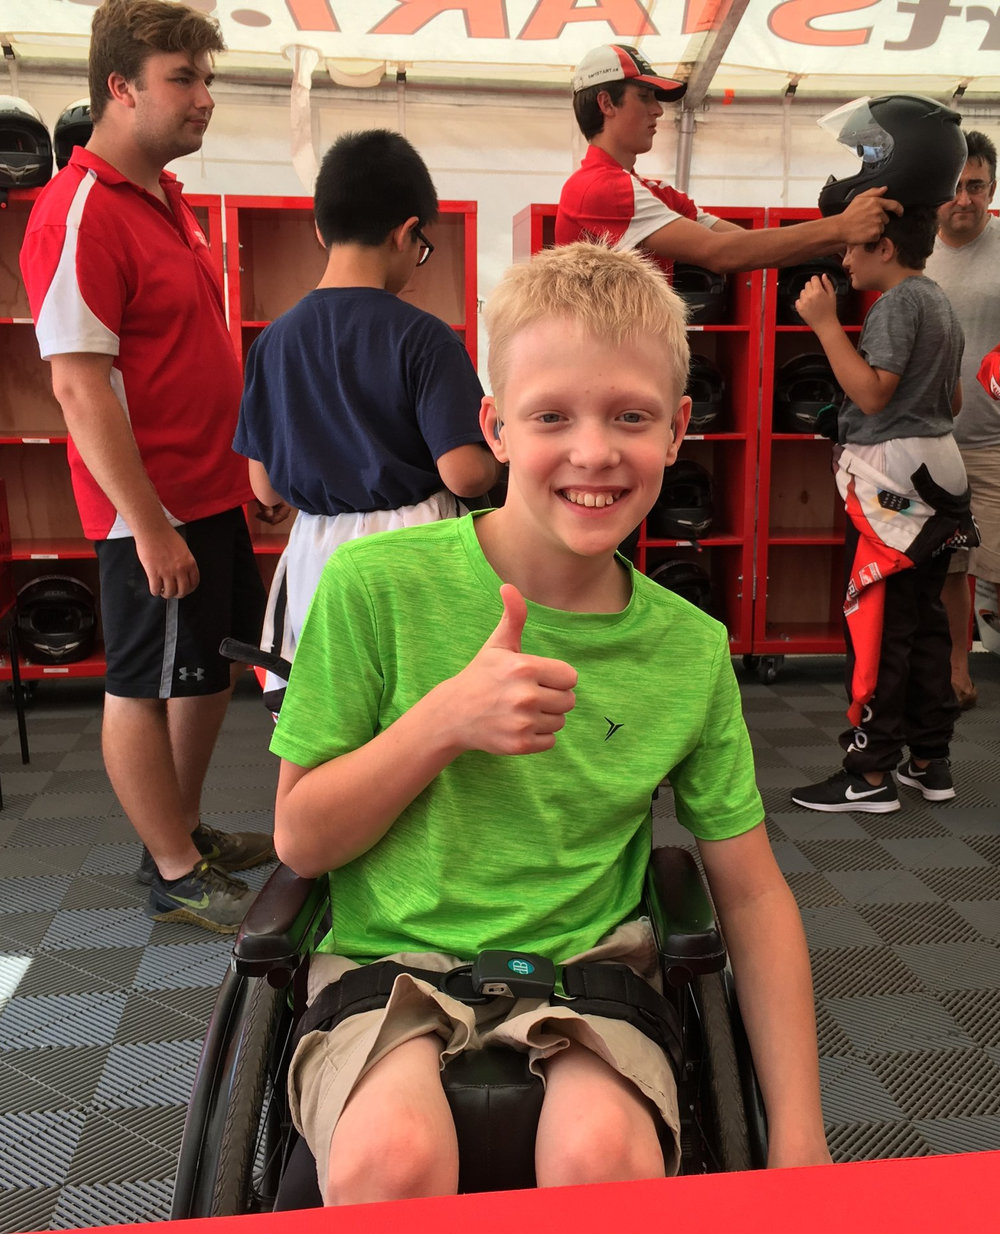 Hand-Controlled Go-Kart - A professionally designed accessible go-kart made specifically for children with physical disabilities affecting the lower body is available so they have an equal opportunity to learn safe driving fundamentals with their peers.